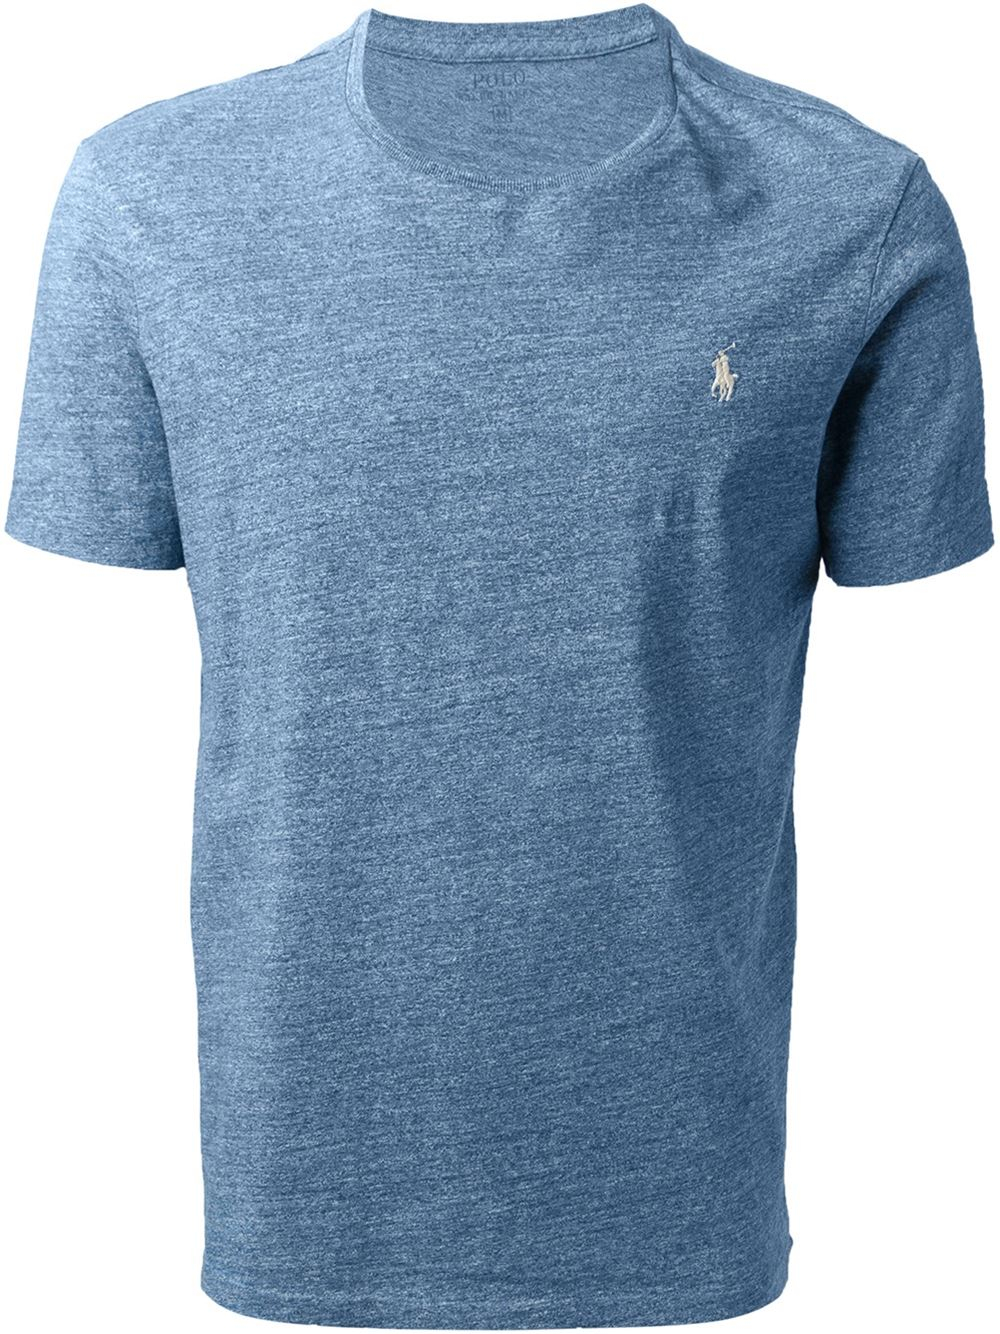 polo ralph lauren custom fit t shirt in blue for men lyst